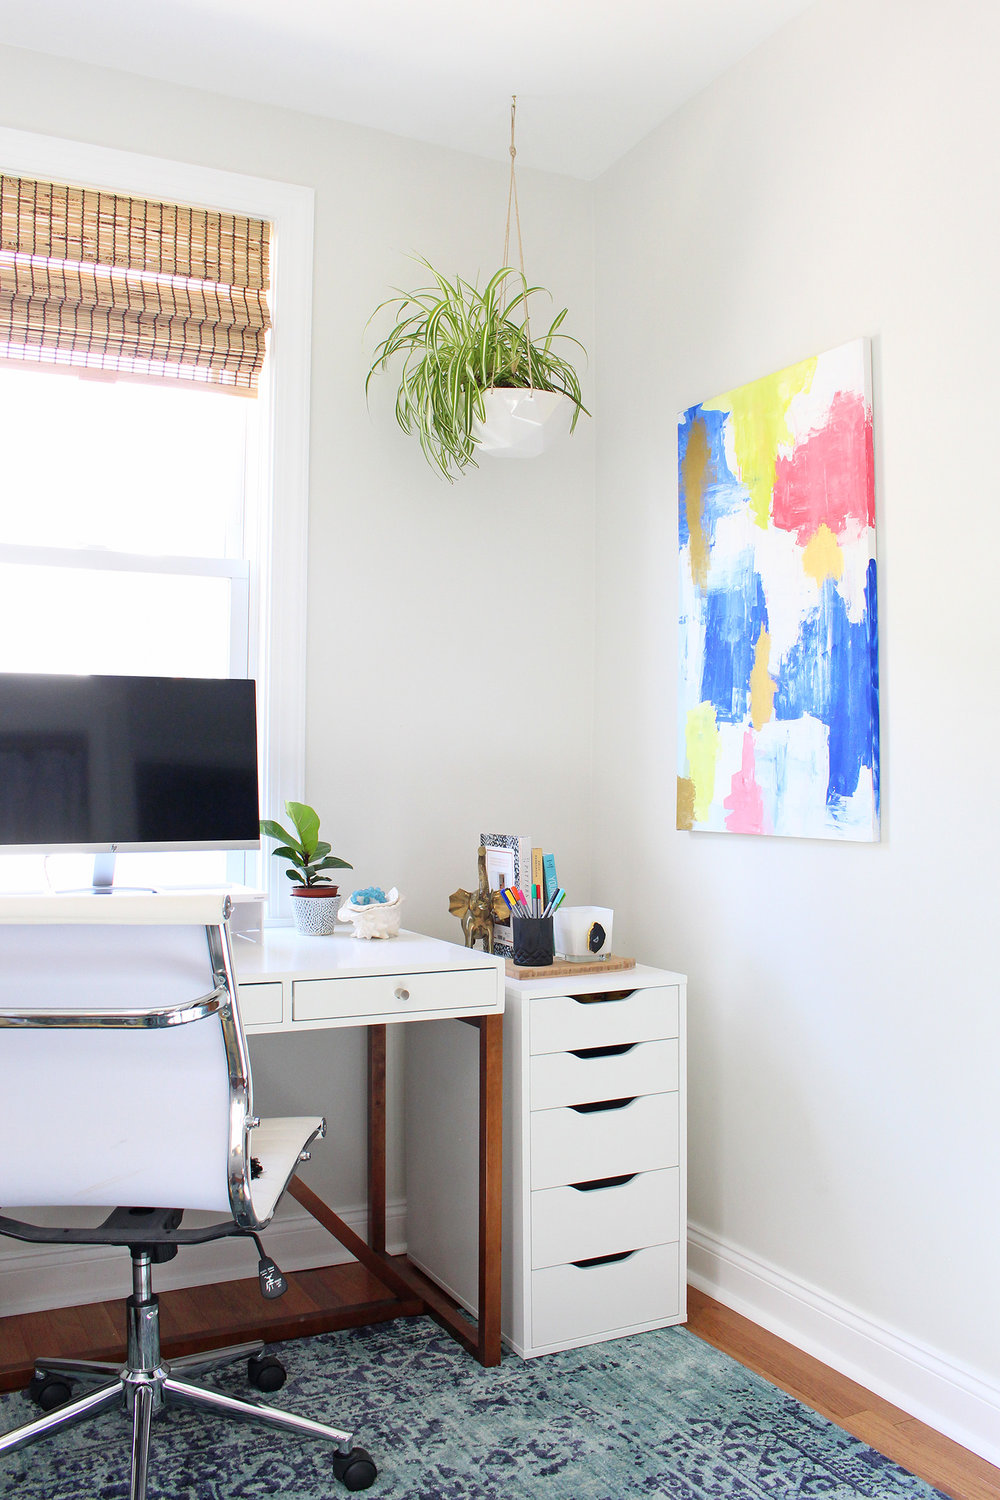 A spider plant hanging in my home office with modern white furniture, an overdyed blue rug, and abstract art. Read more about decorating with houseplants and where to buy them online in this post!